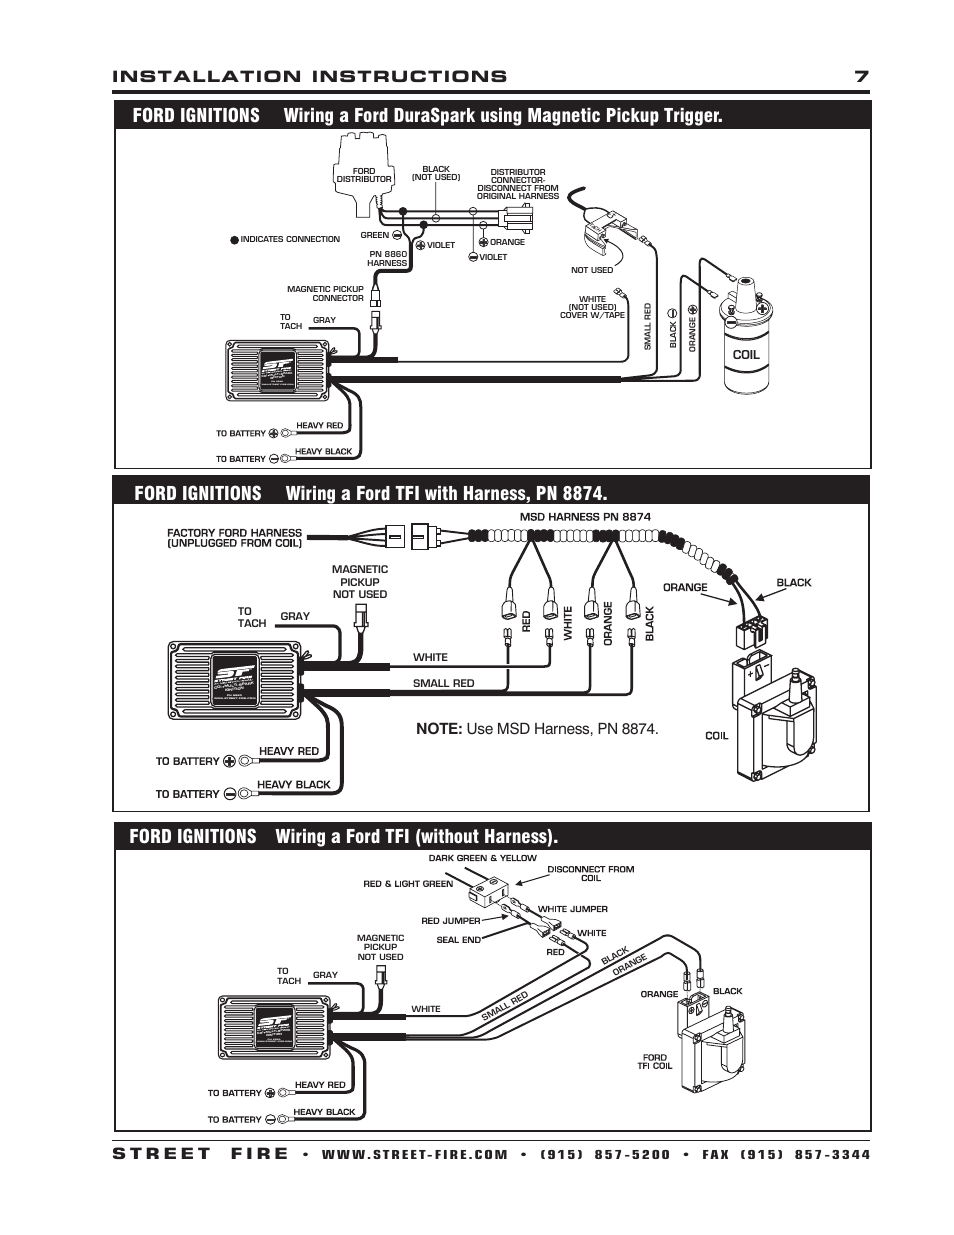 92 ford e 350 fuse box ford ignitions wiring a ford tfi without harness msd ford e 350 diagram